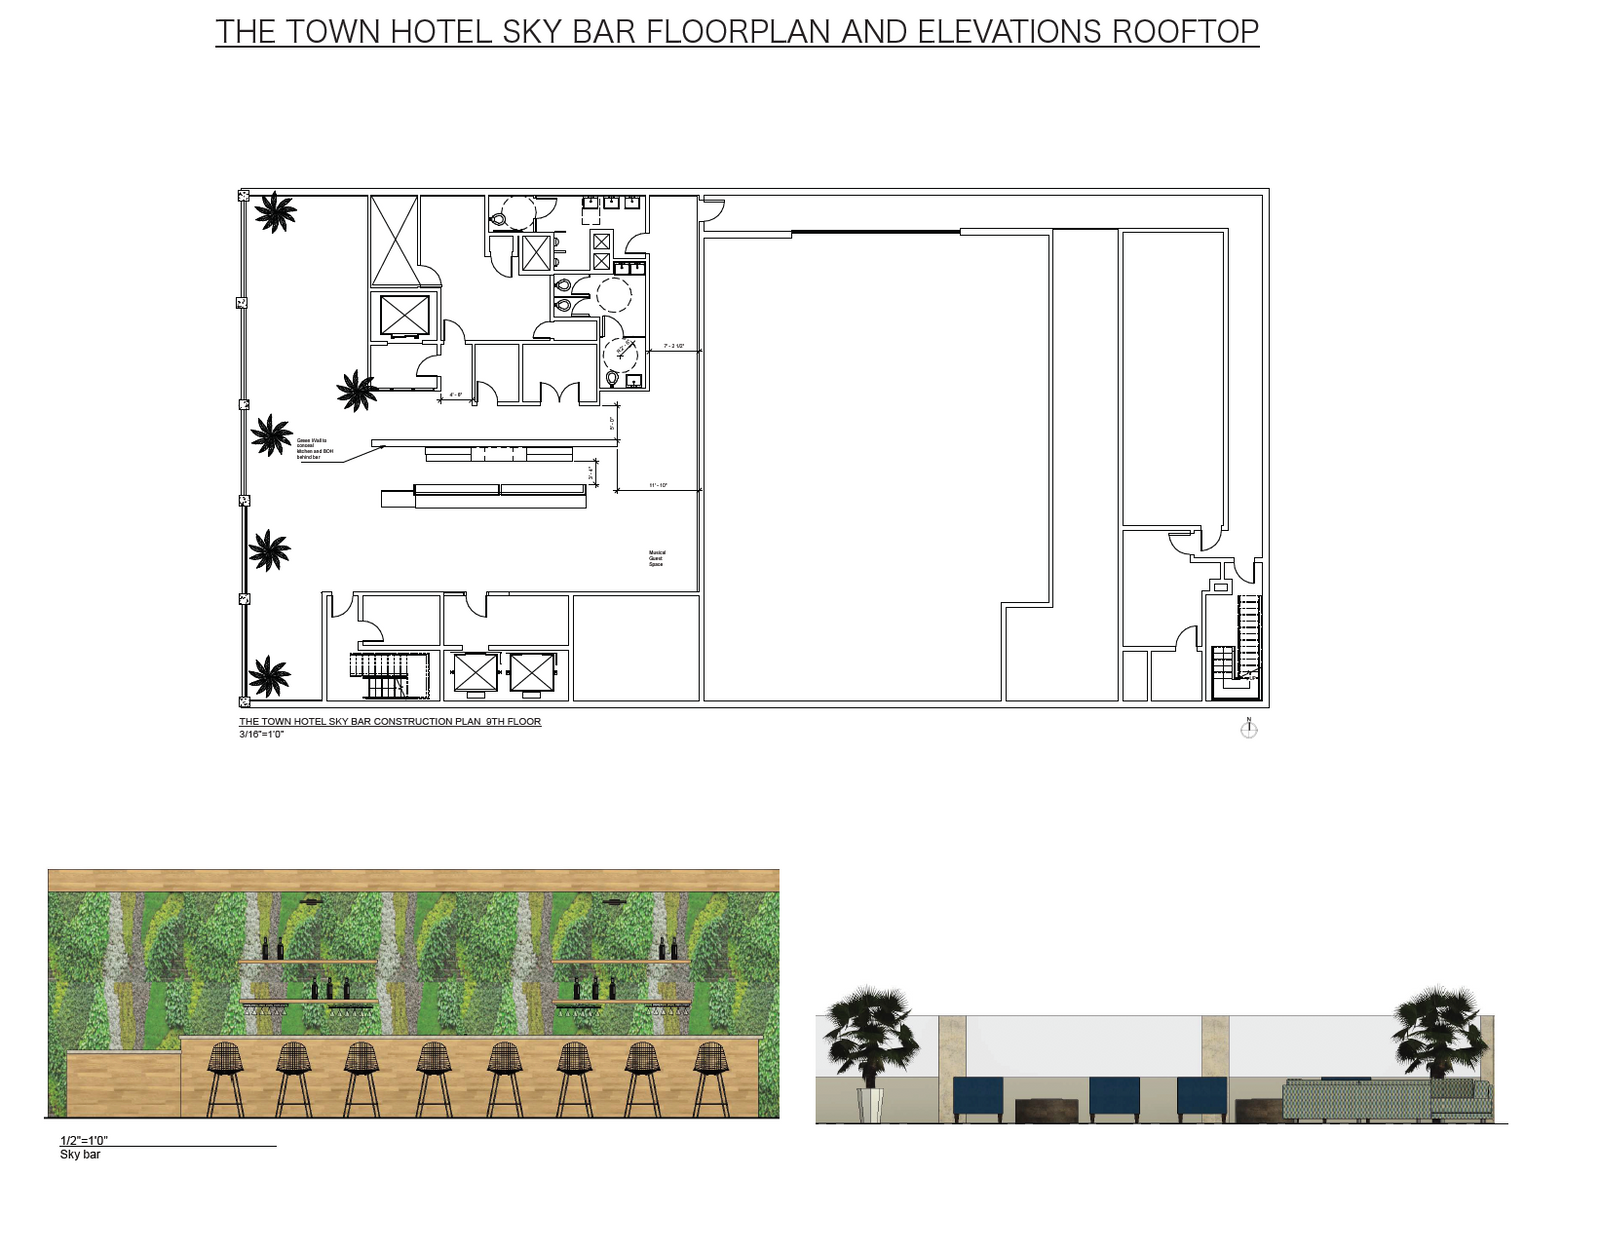 The Town Hotel - Rooftop Plans